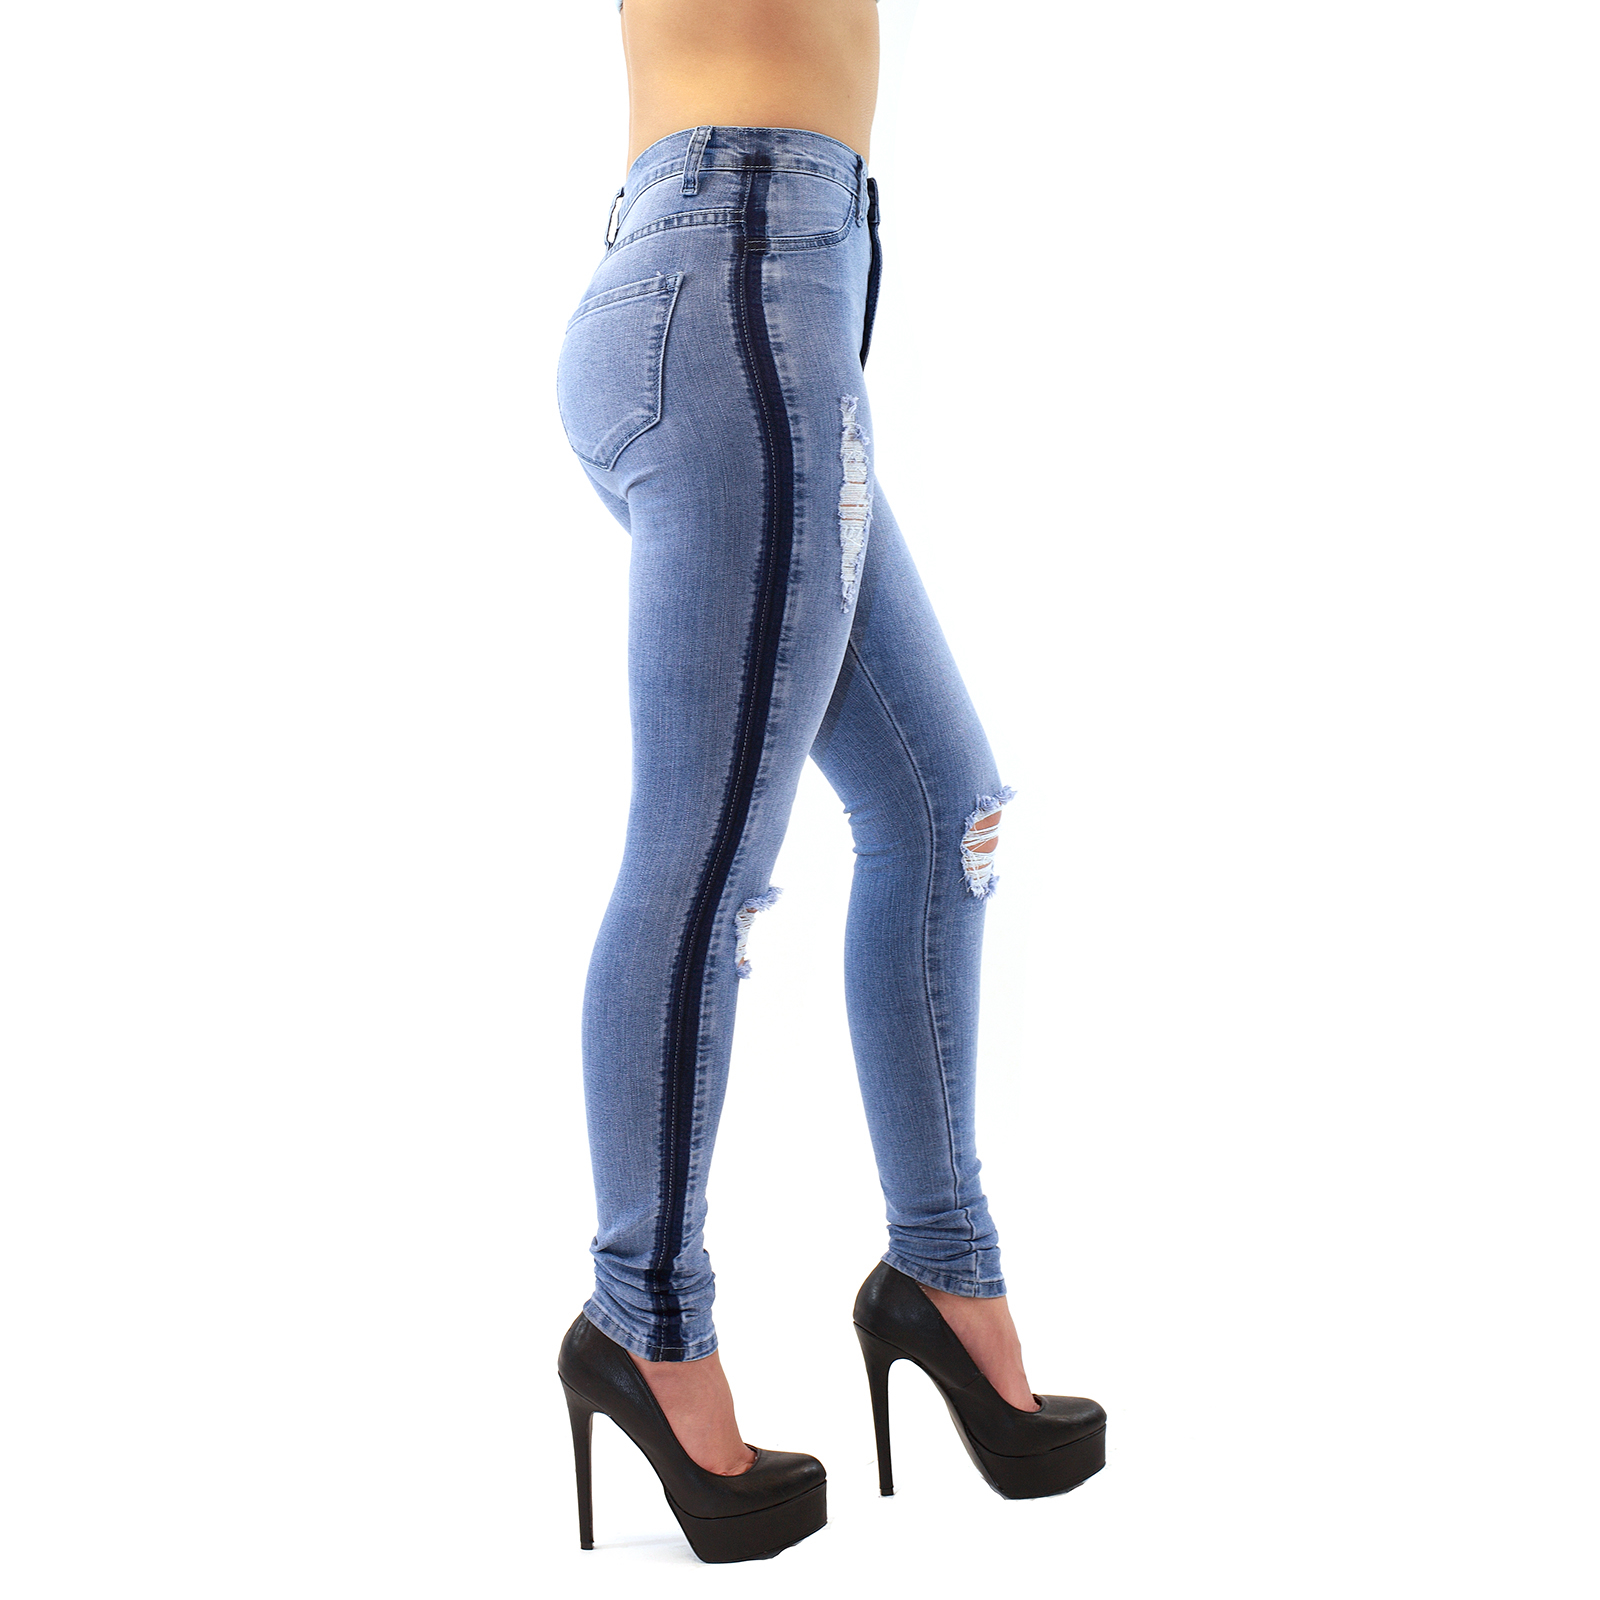 High-Waist Two Tone Blue Skinny Jeans